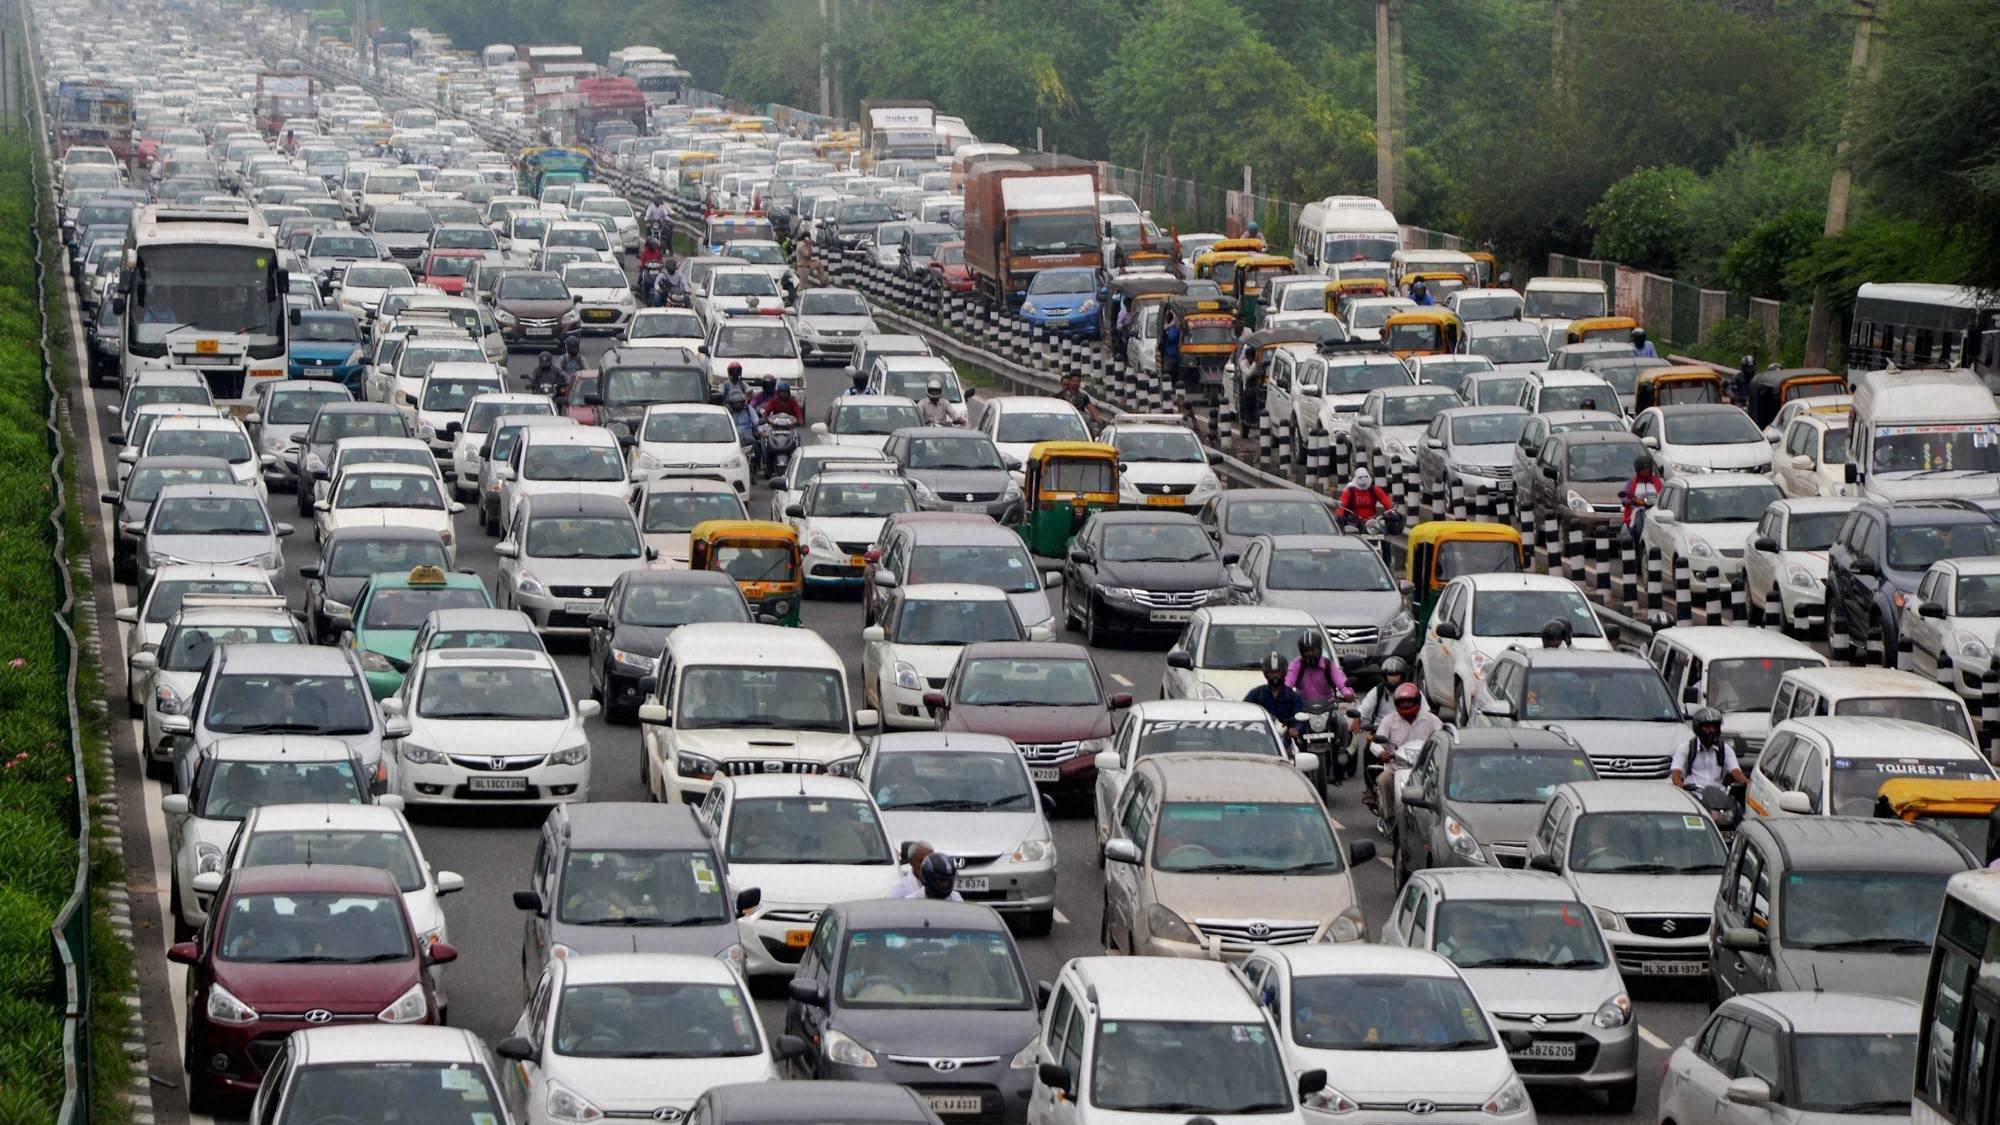 Delhi Traffic Rerouted for R-Day Rehearsals: All You Need to Know